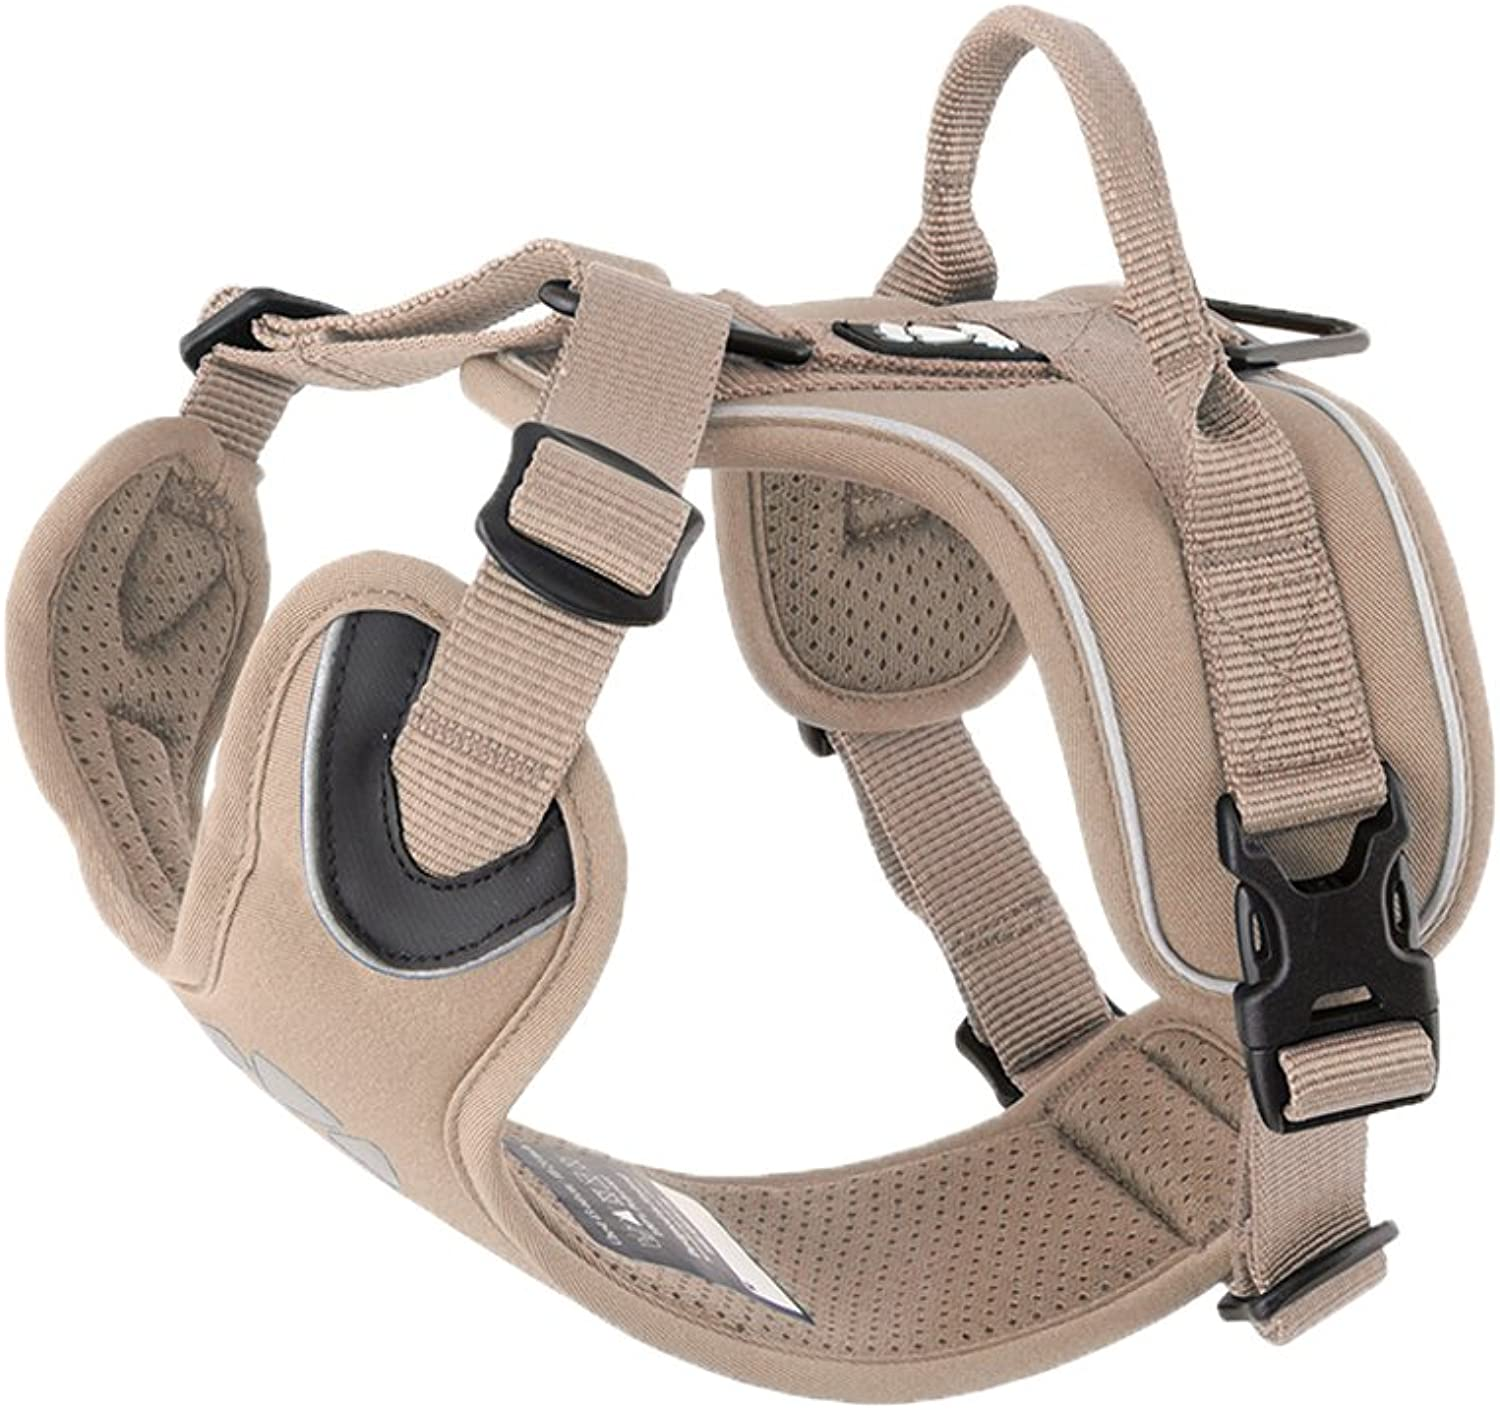 Hurtta Active Harness, Sand, 3239